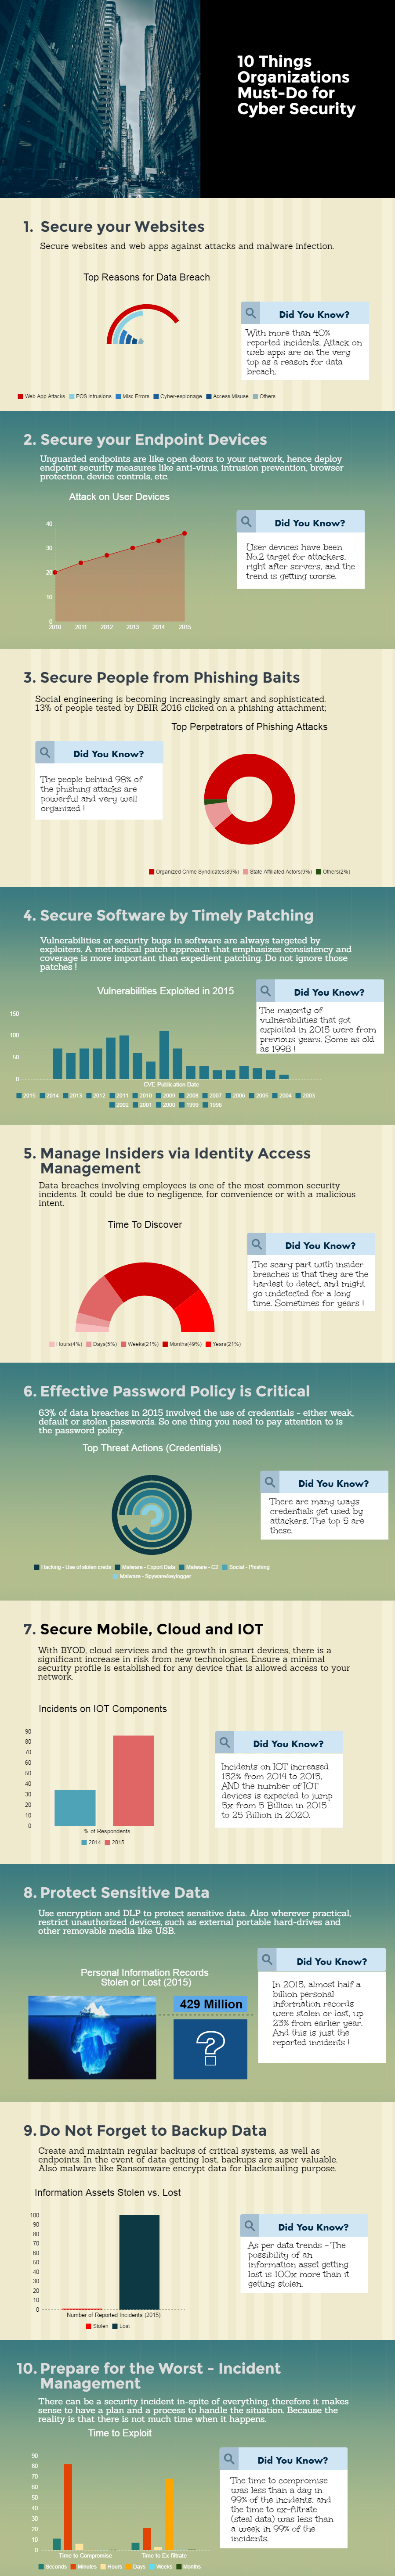 10-things-organizations-must-do-for-cyber-security-2016 2